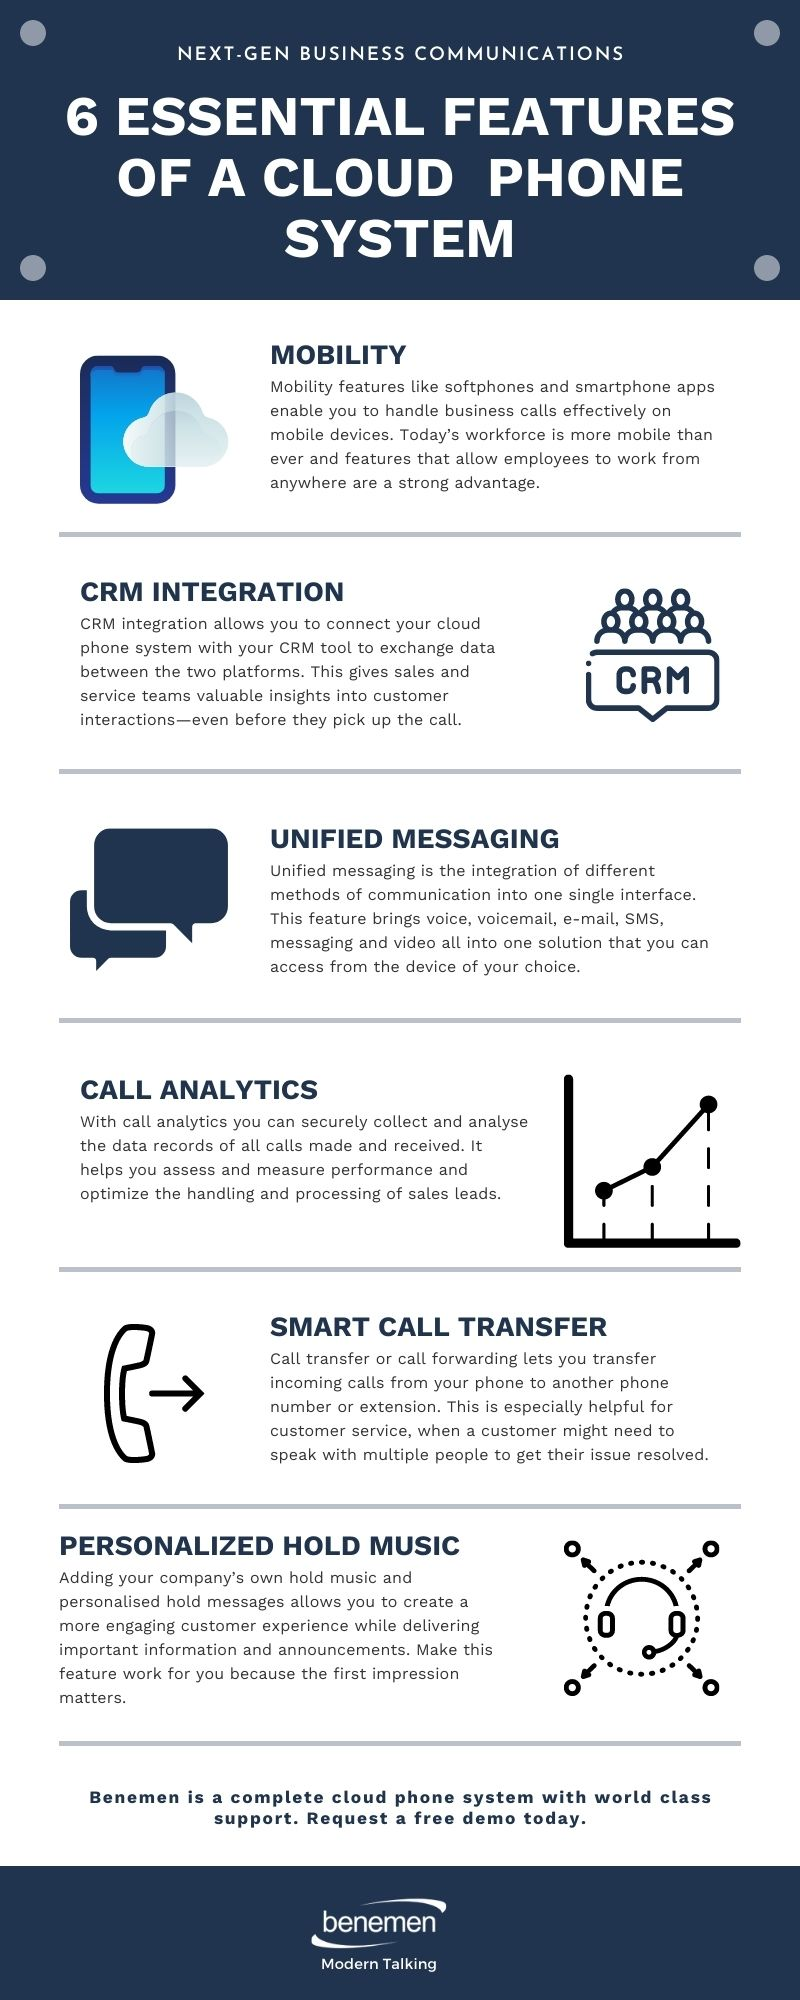 Cloud phone system essential features Infographic